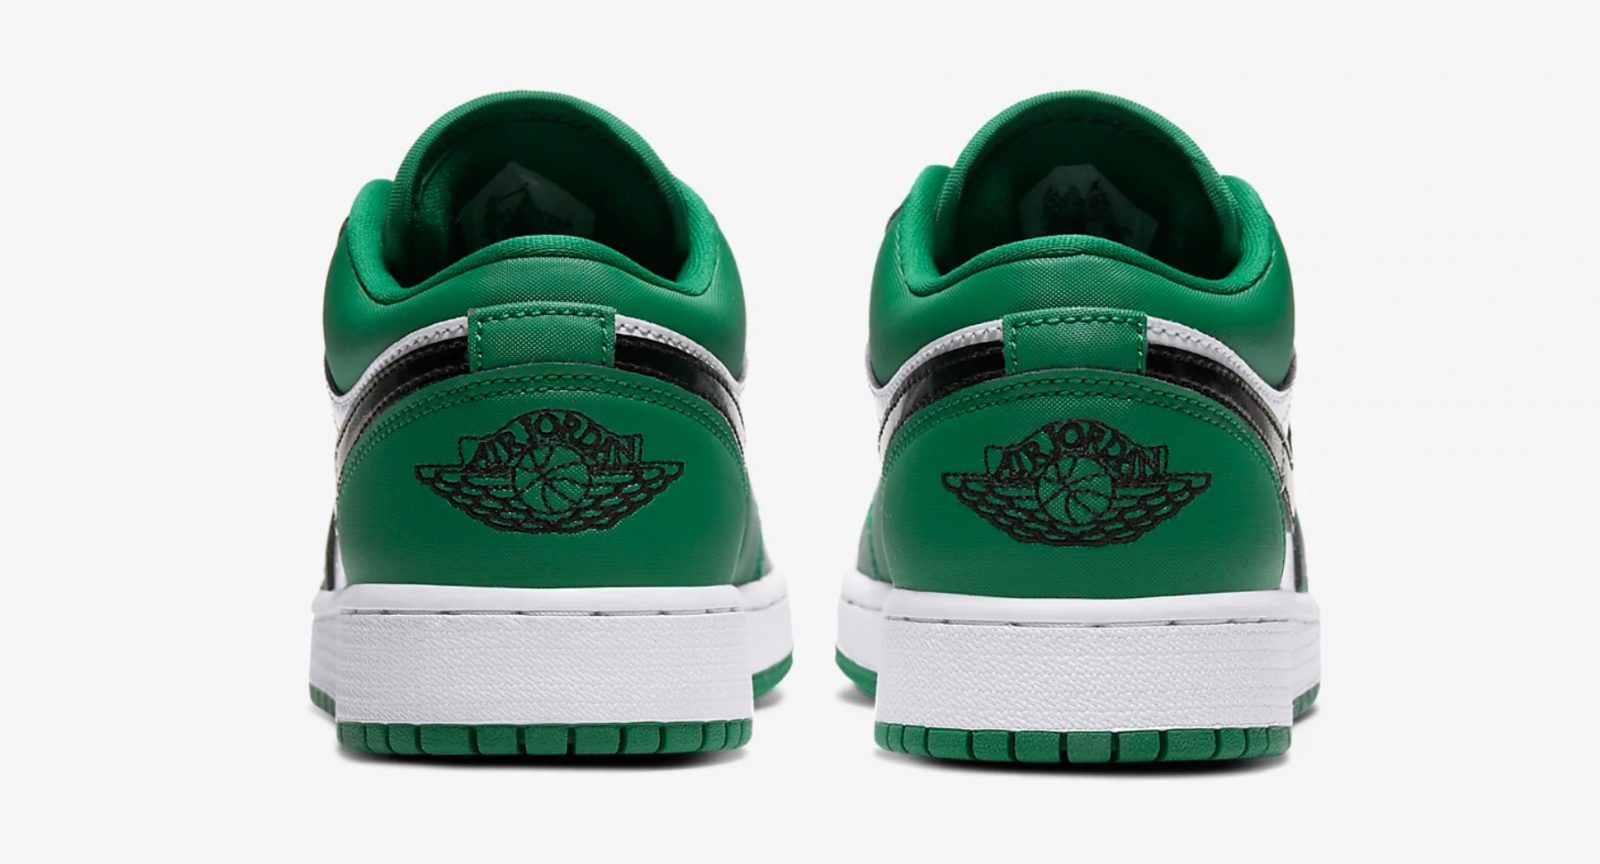 Air Jordan 1 Low Pine Green 553560-301 heel